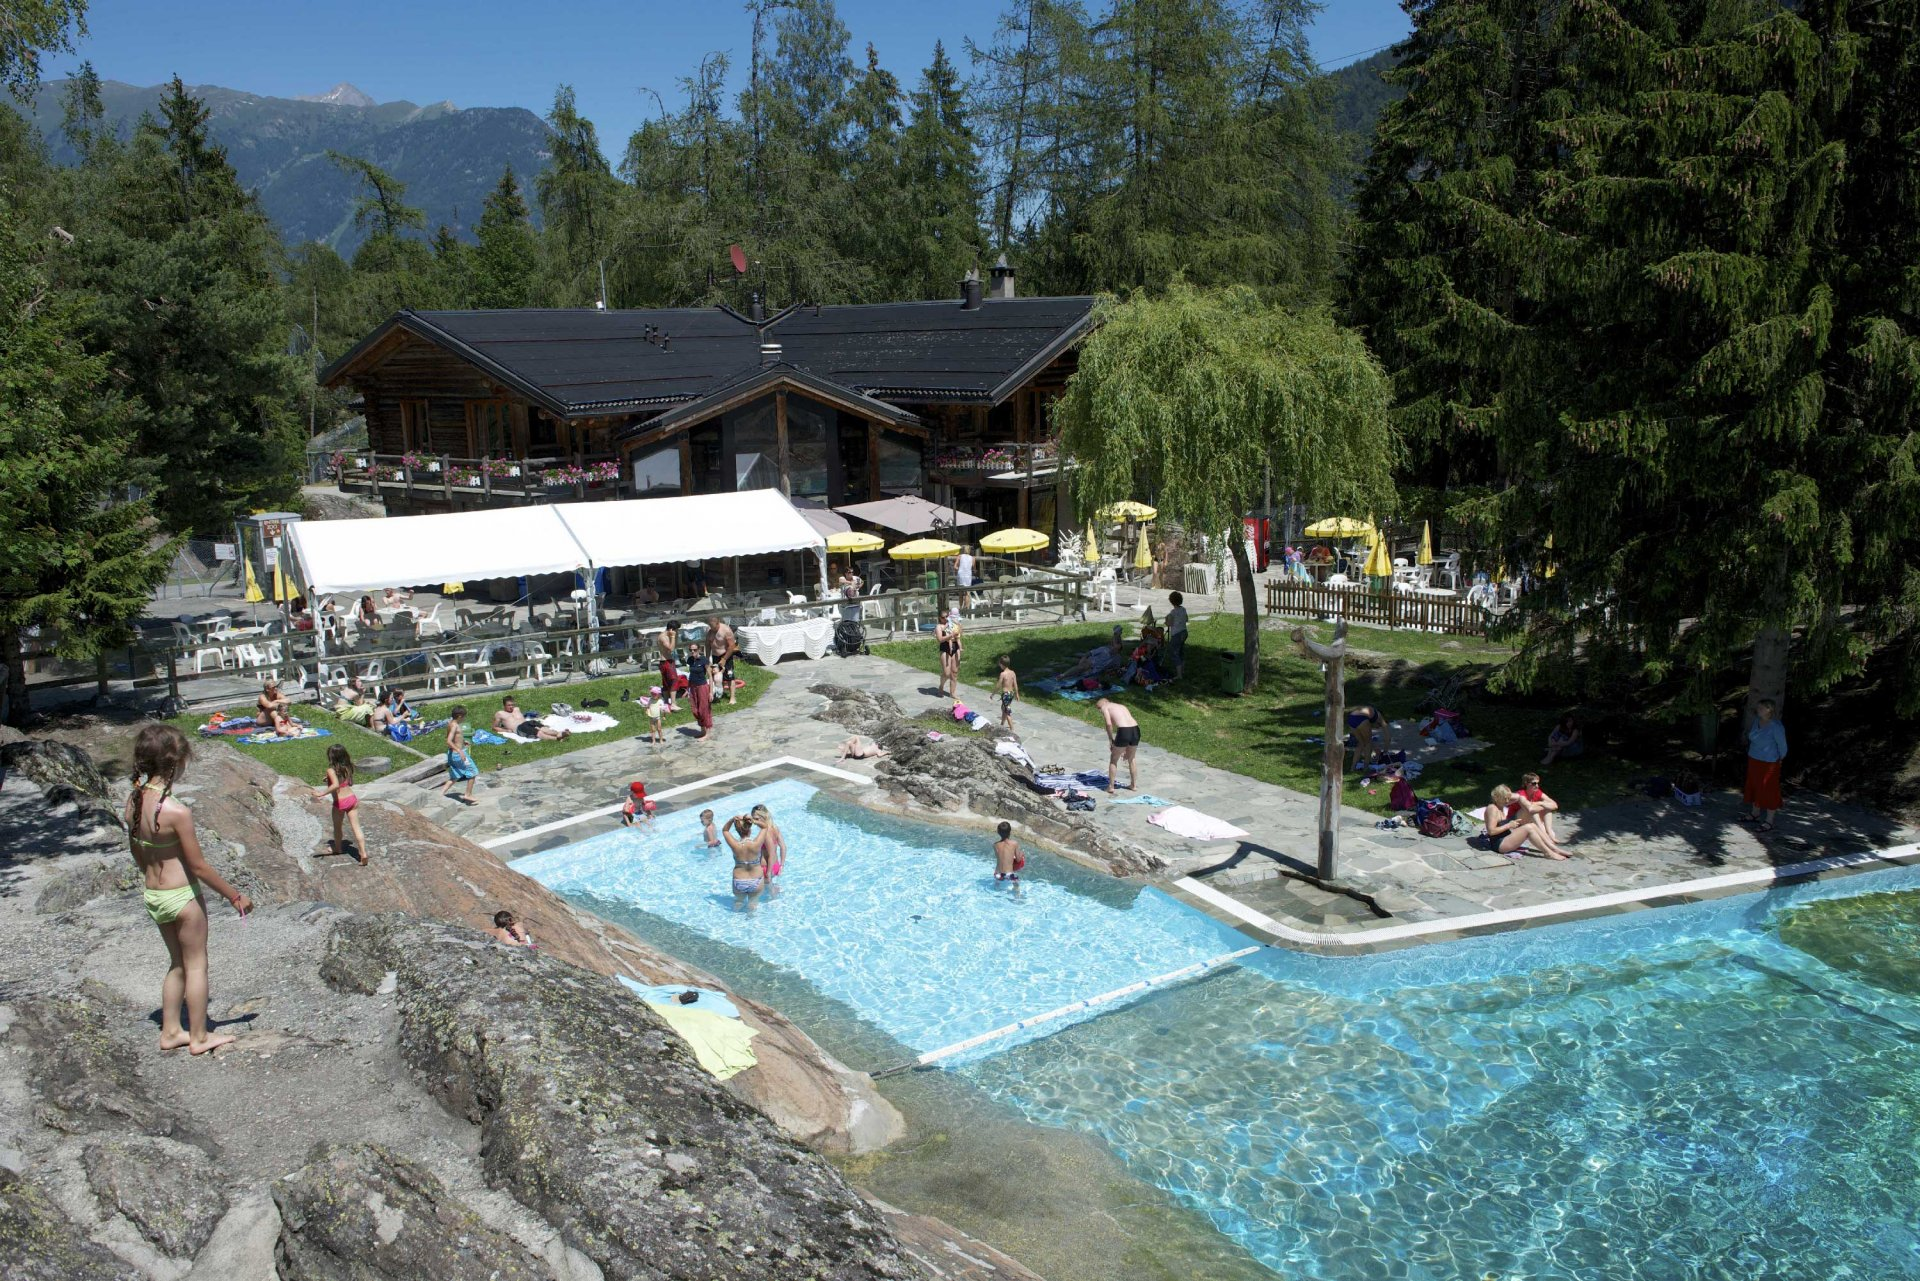 /UserFiles/File/Annuaire/annuaire_portails/Zoo-/Zoo-Piscine1.jpg